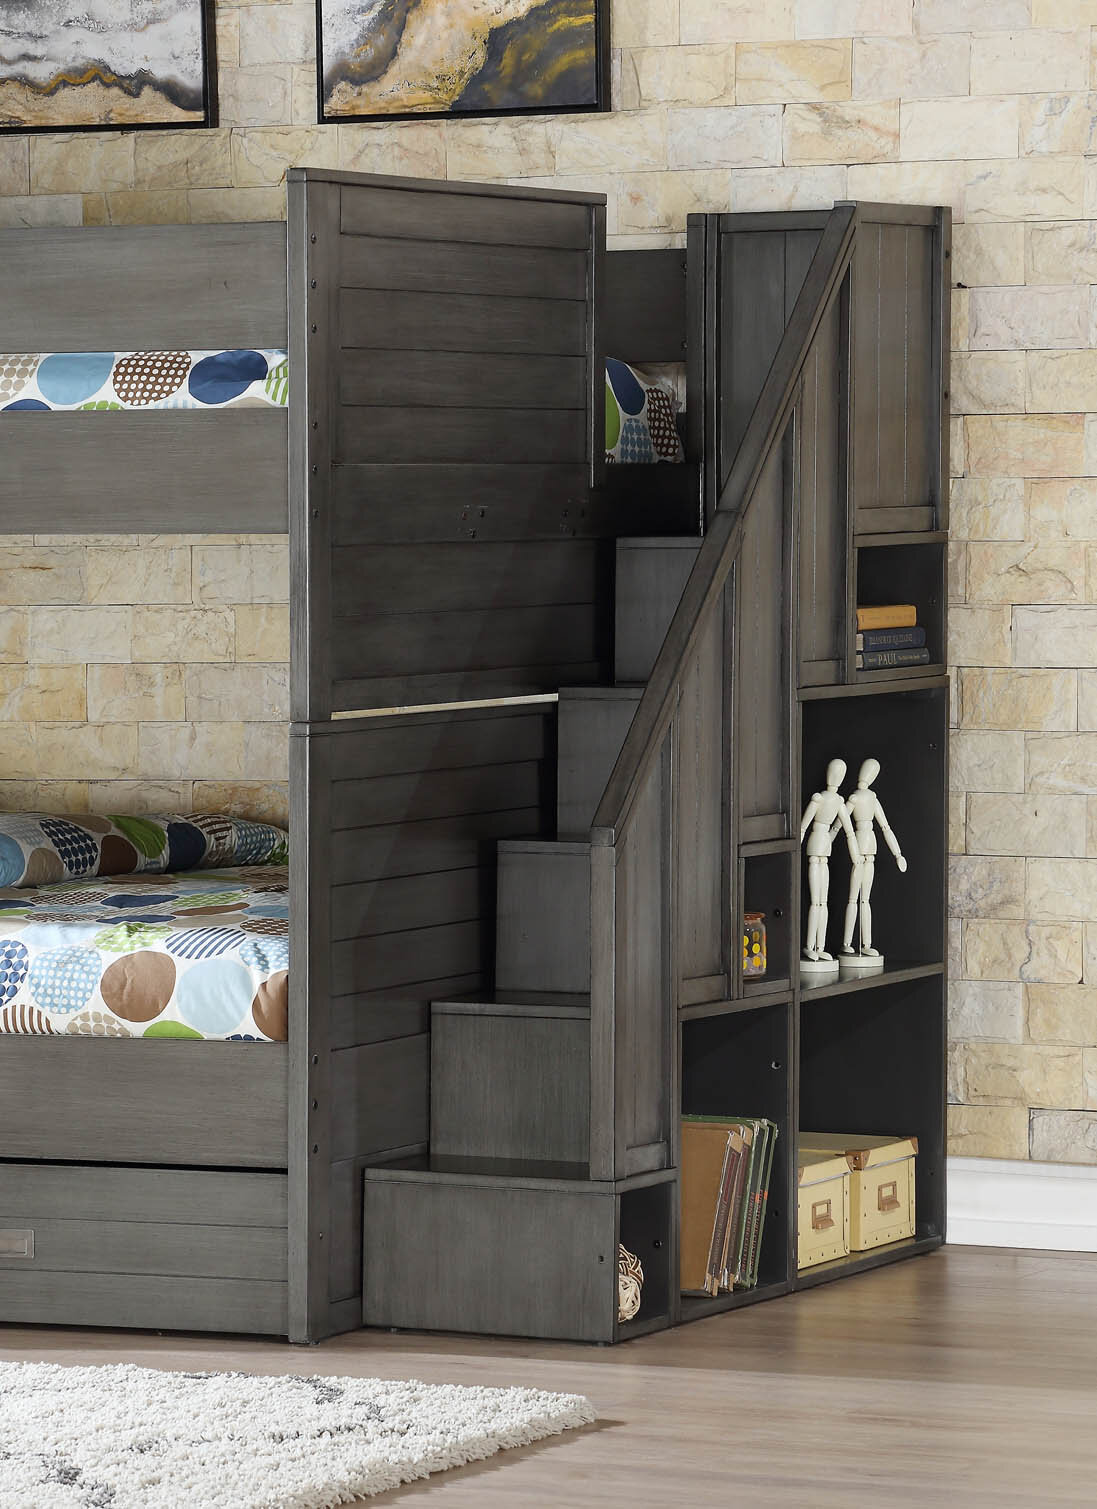 LR Dylan Full with drawers Stairs Close Up.jpg